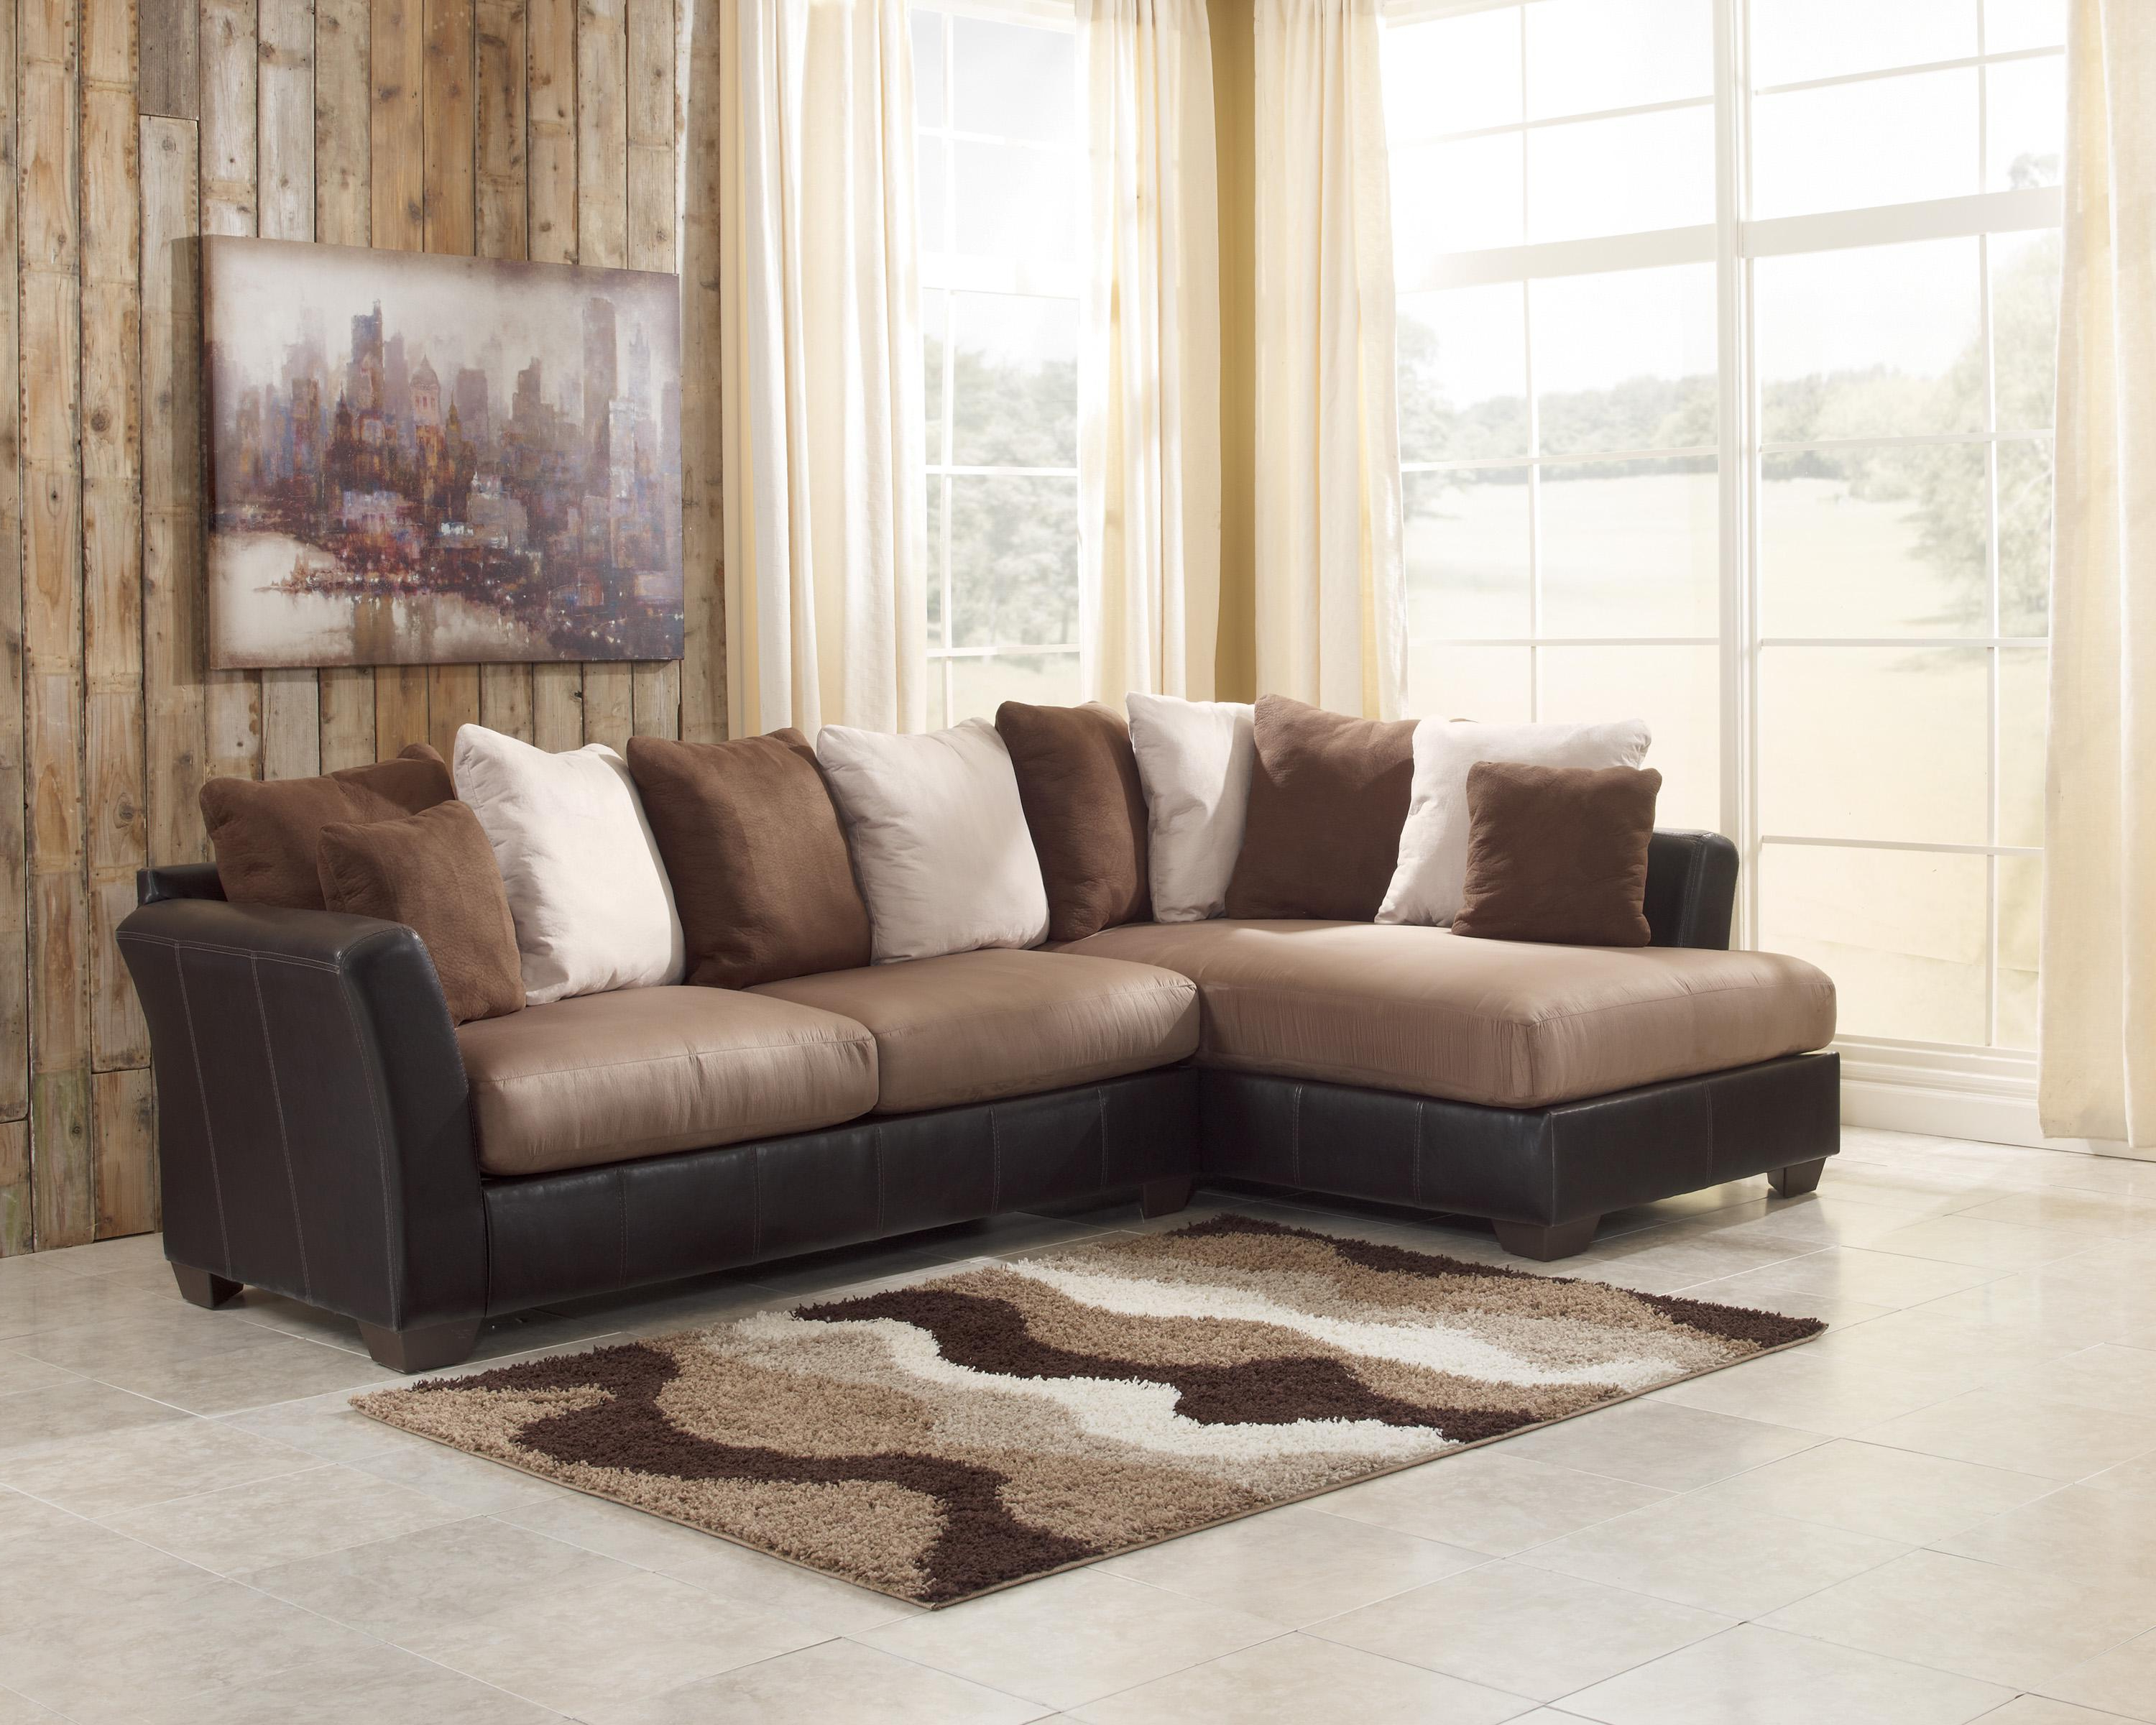 Most Current 2 Piece Sectional Sofas – Home Design Ideas And Pictures Inside Delano 2 Piece Sectionals With Raf Oversized Chaise (View 15 of 20)